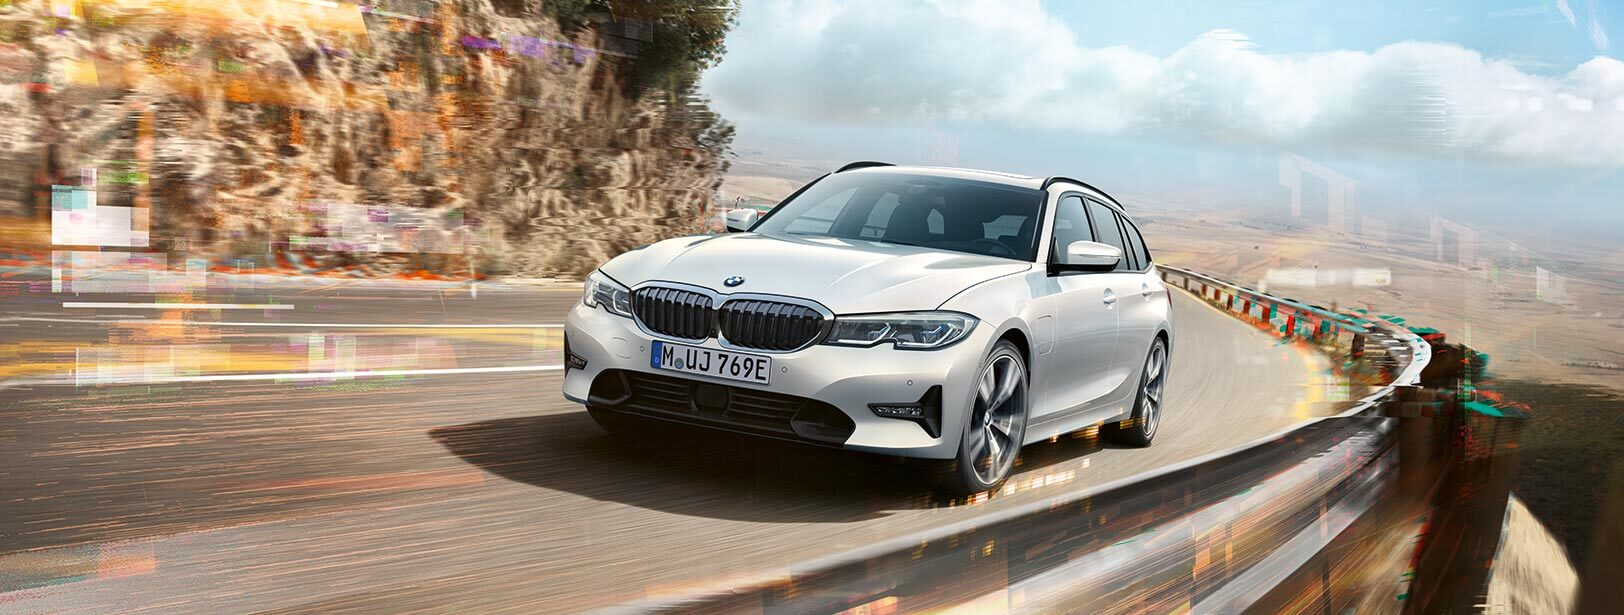 THE 3: DER BMW 320e TOURING PLUG-IN-HYBRID